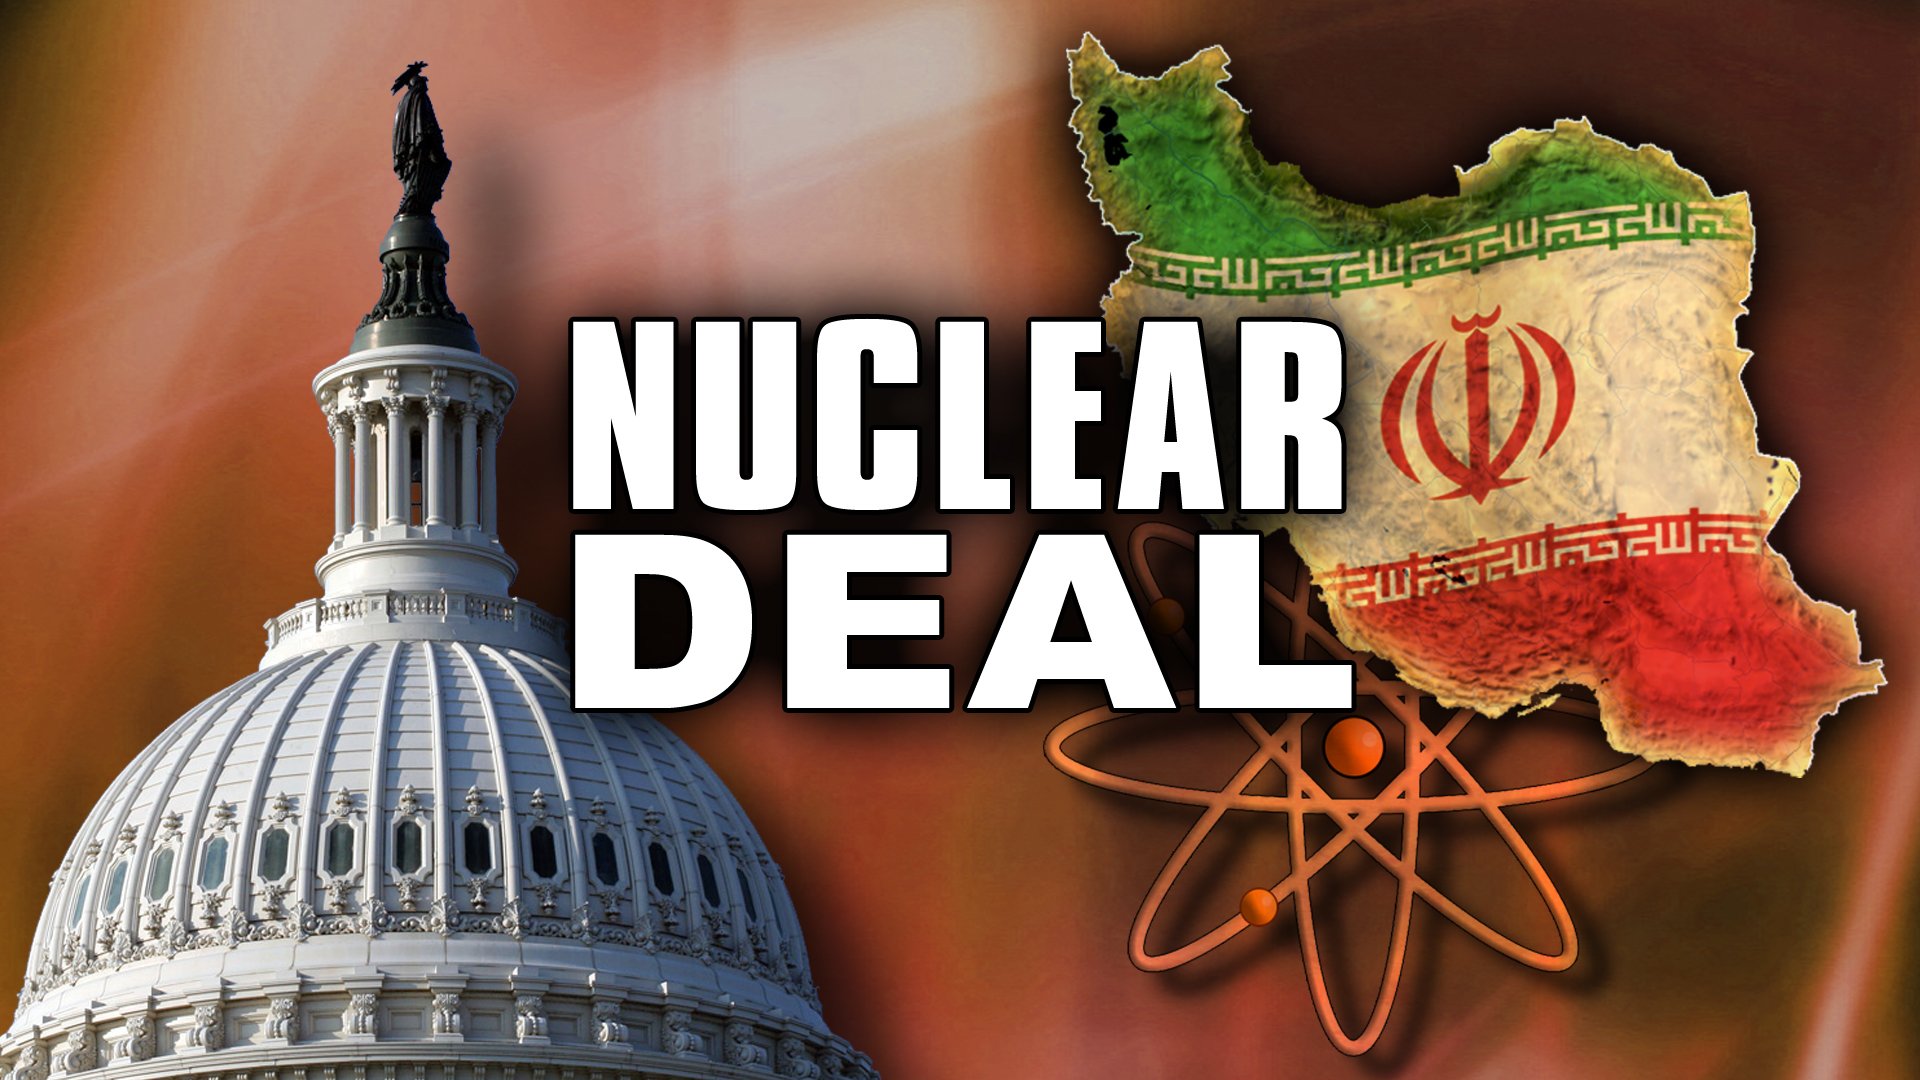 https://southfront.org/wp-content/uploads/2015/12/iran-nuclear-deal-congress1.jpg